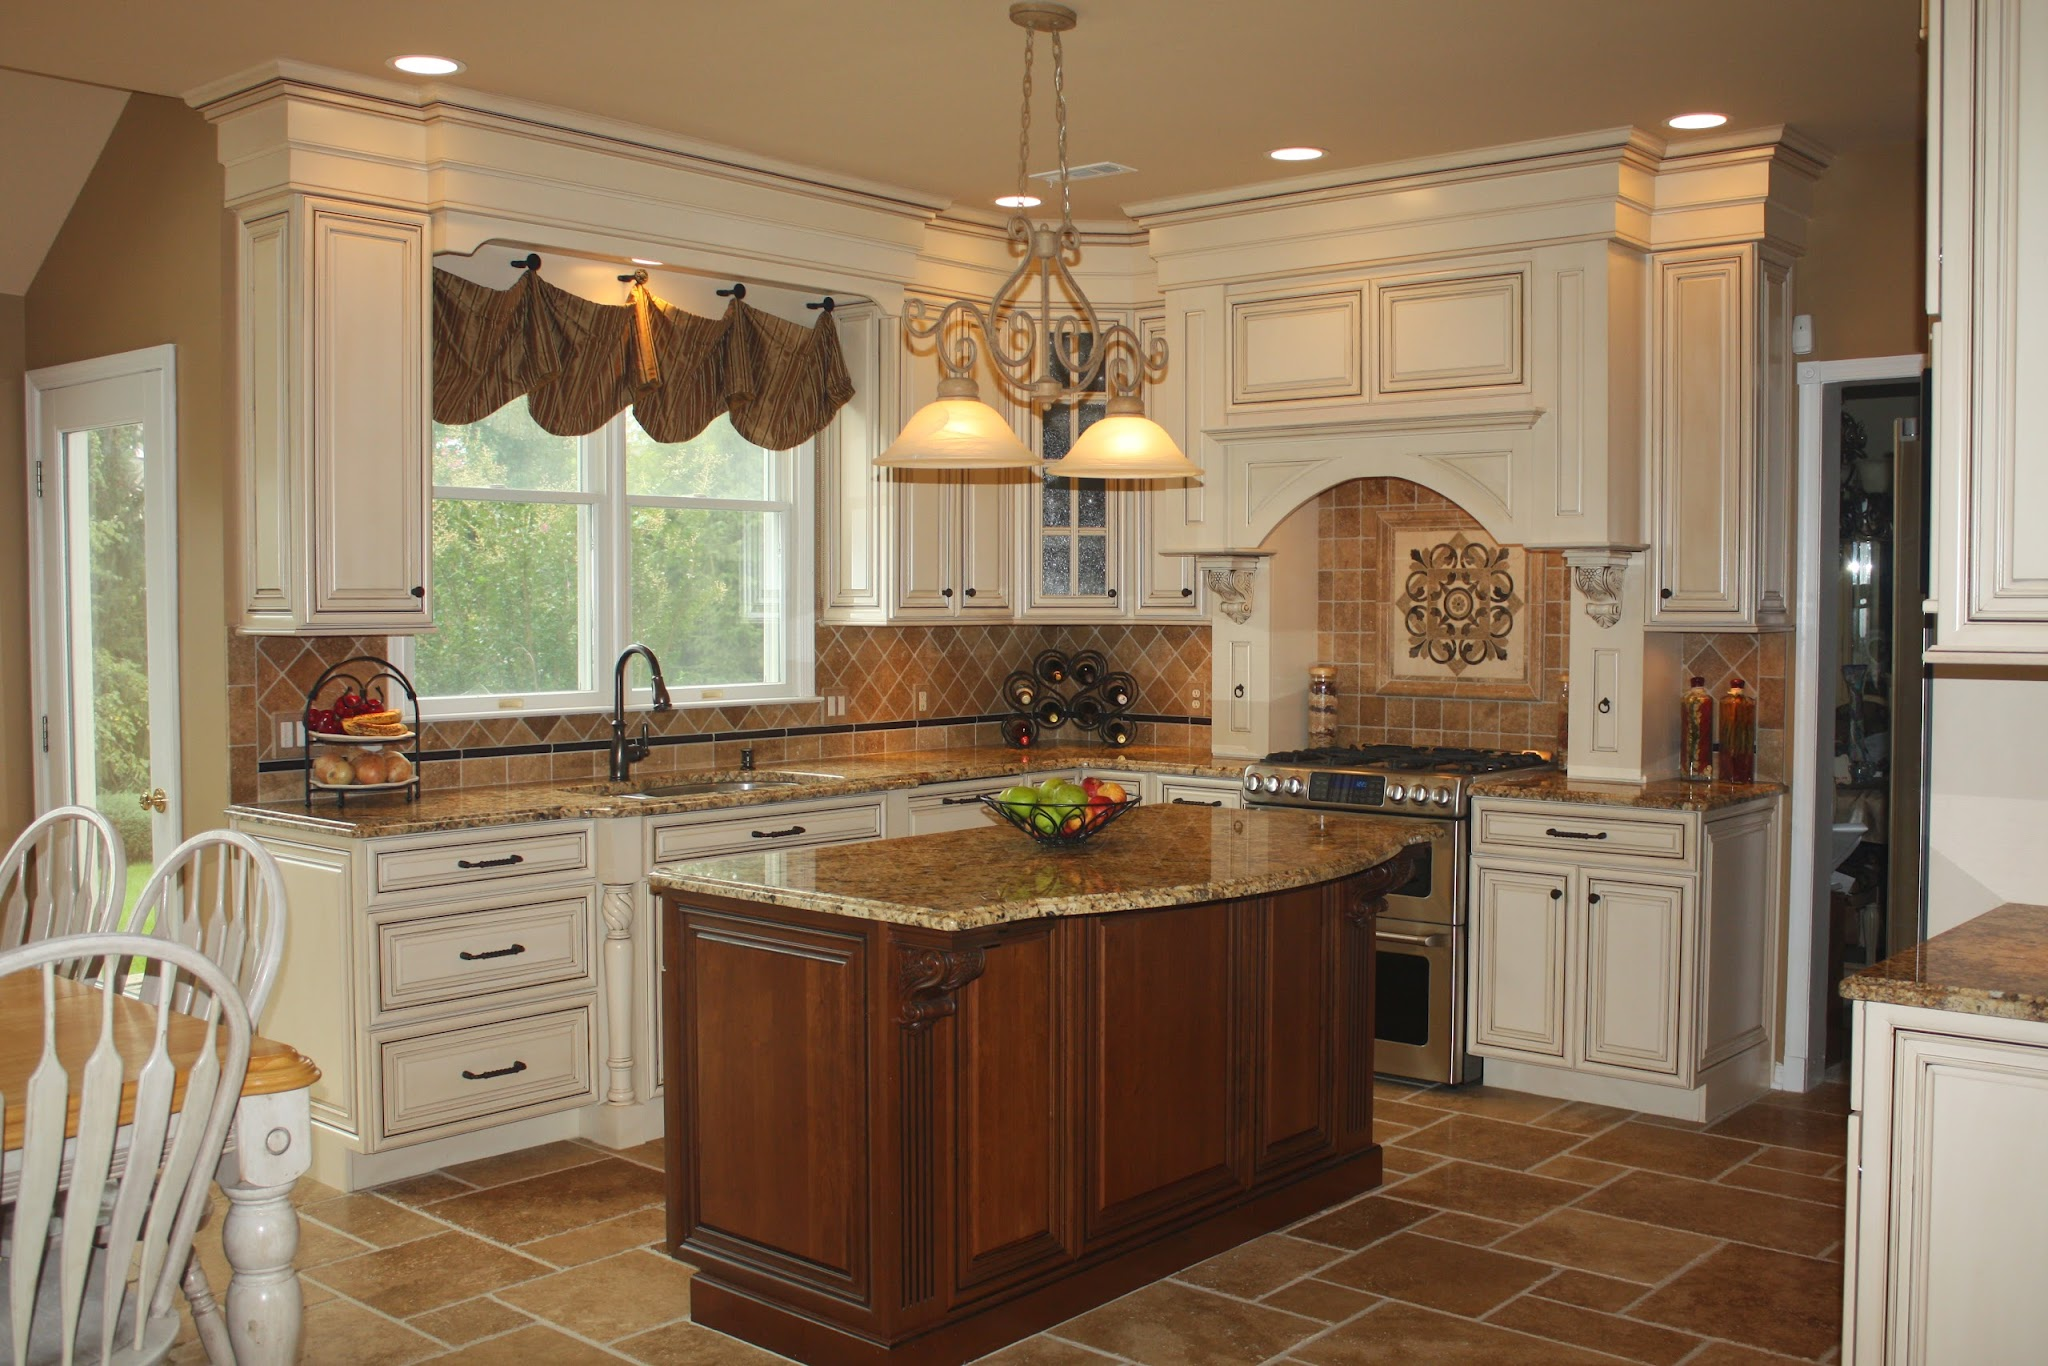 Houzz Photos Kitchen Backsplash